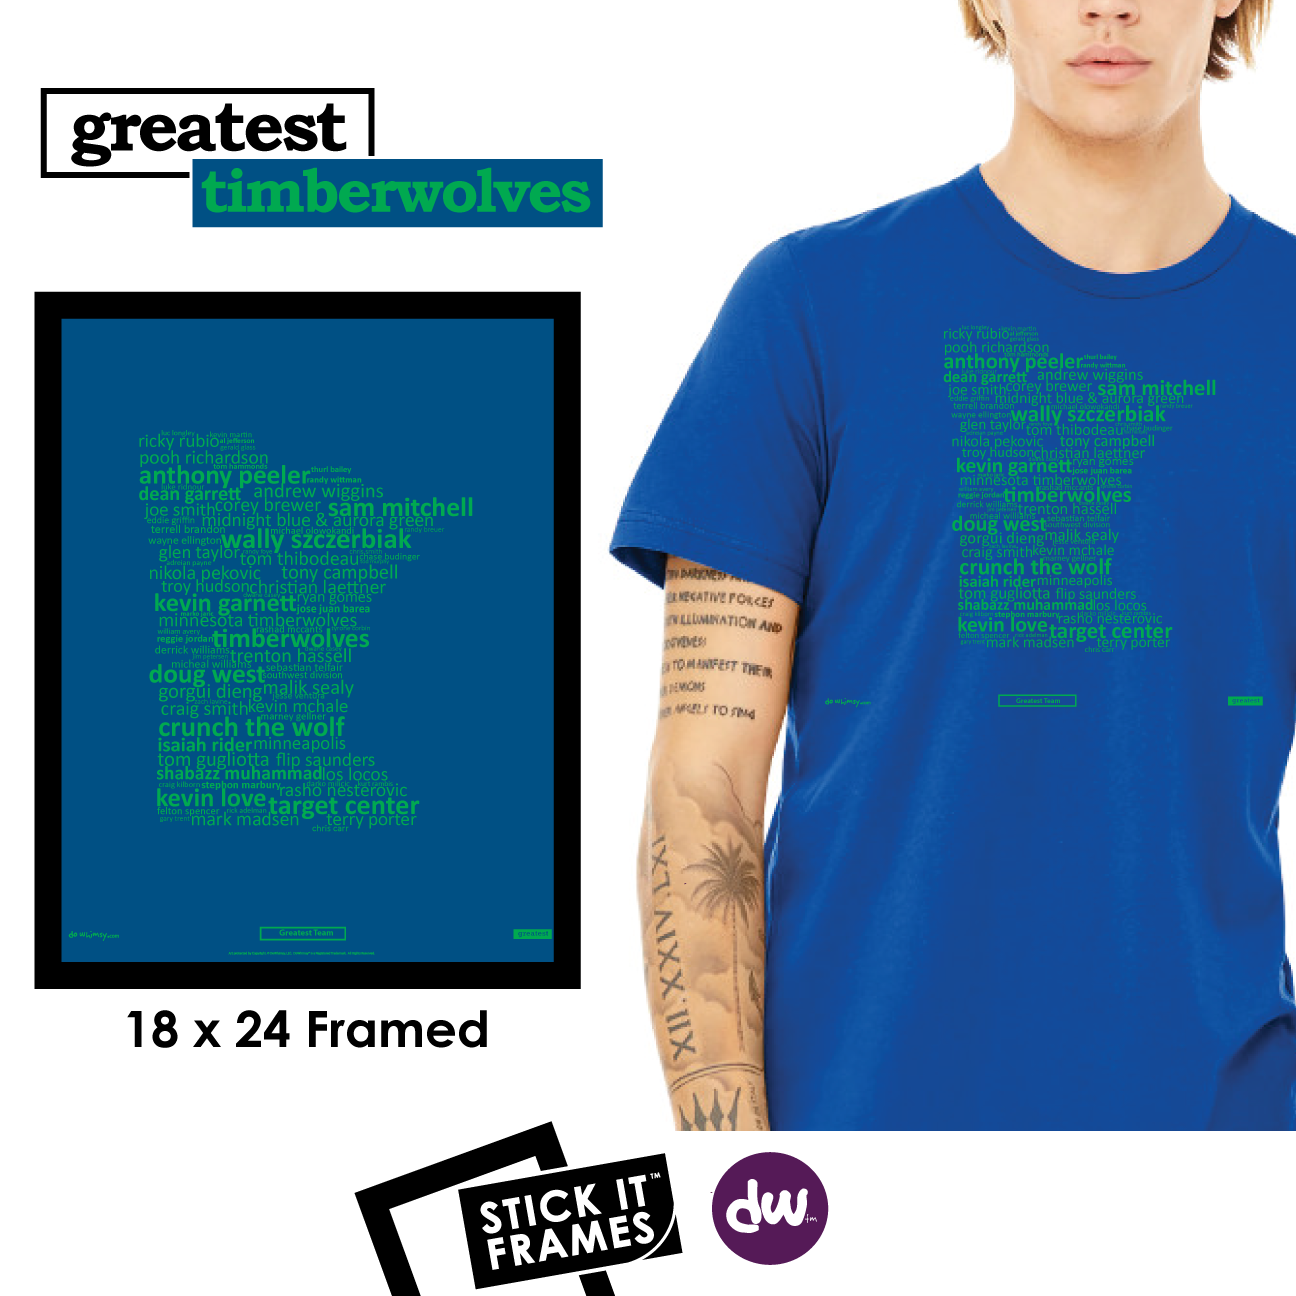 Greatest Minnesota (Timberwolves) - All Products (Shirt, Art, Frames (R))